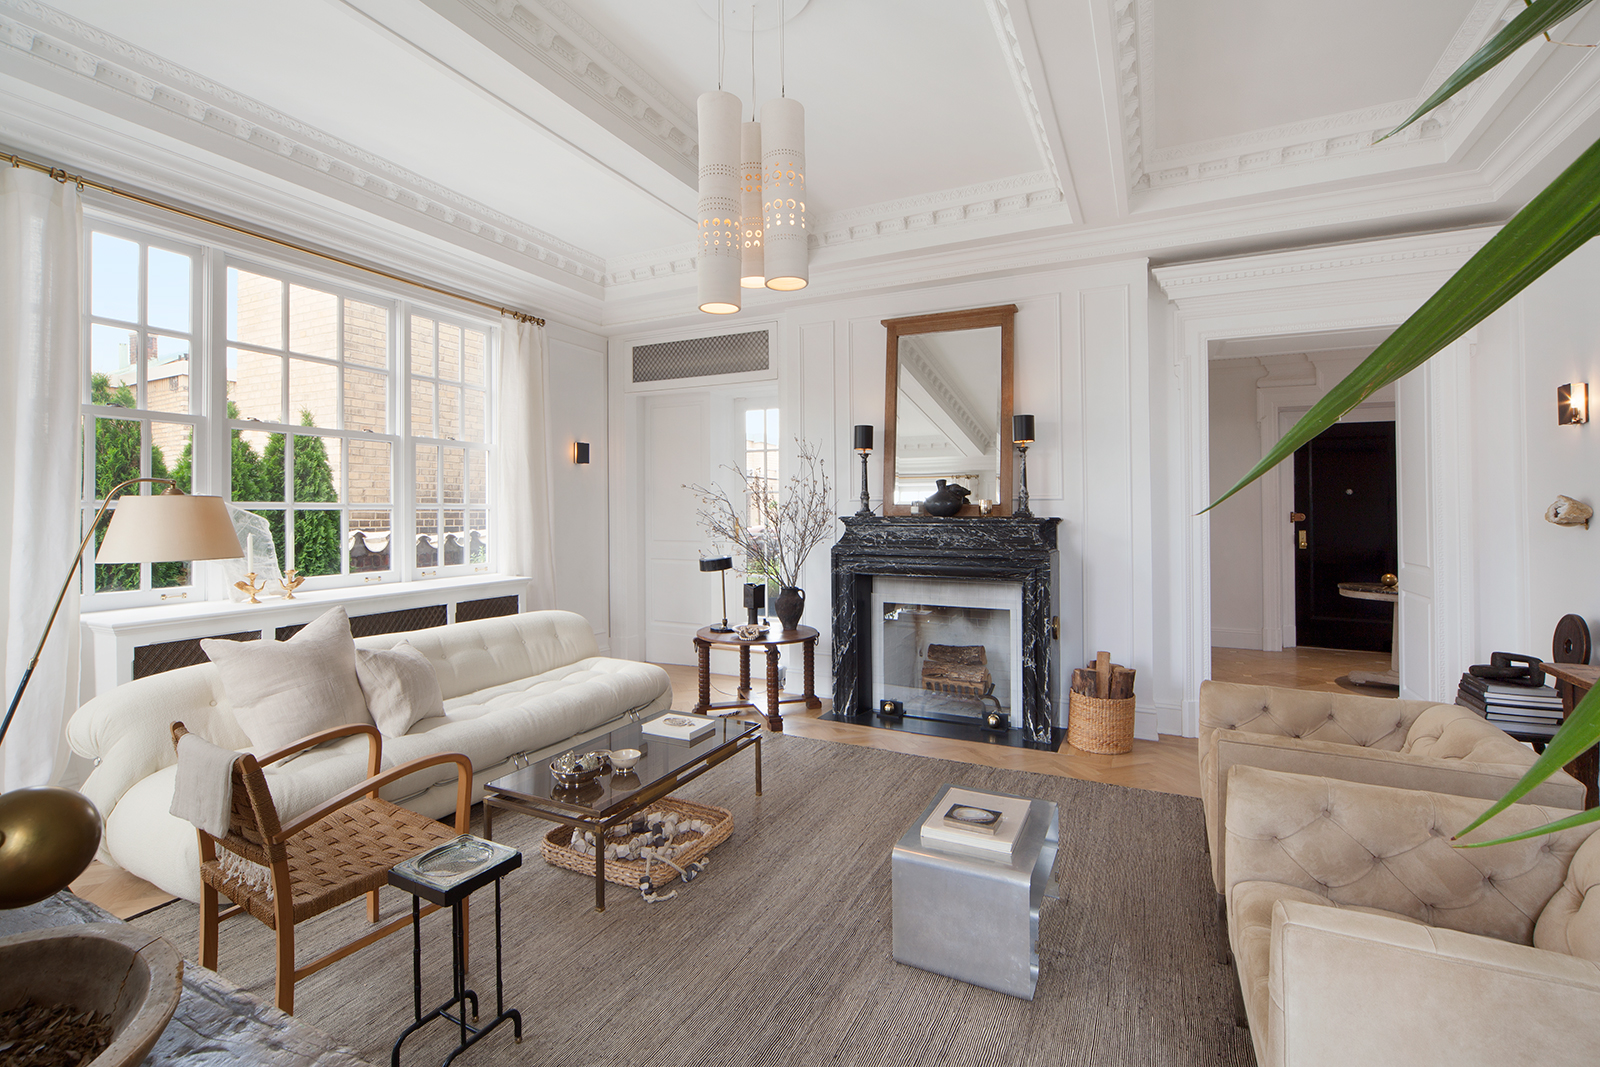 Nate berkus jeremiah brent ask 10 5m for their greenwich village apartment